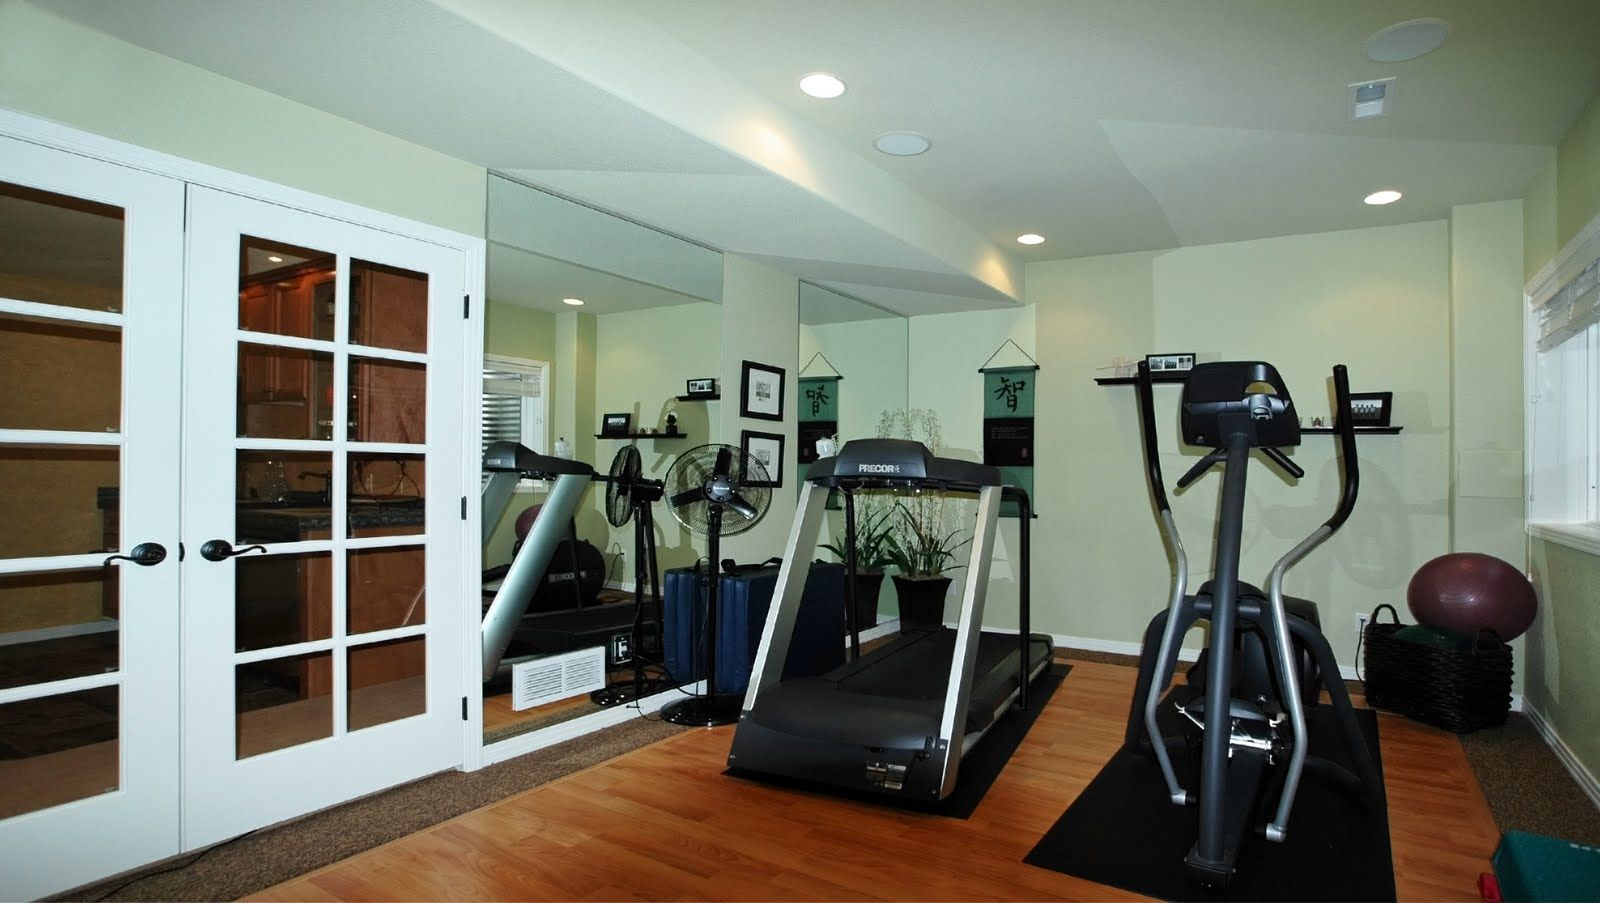 Exercise room decor decorating a workout room in your home1 room amipublicfo Choice Image